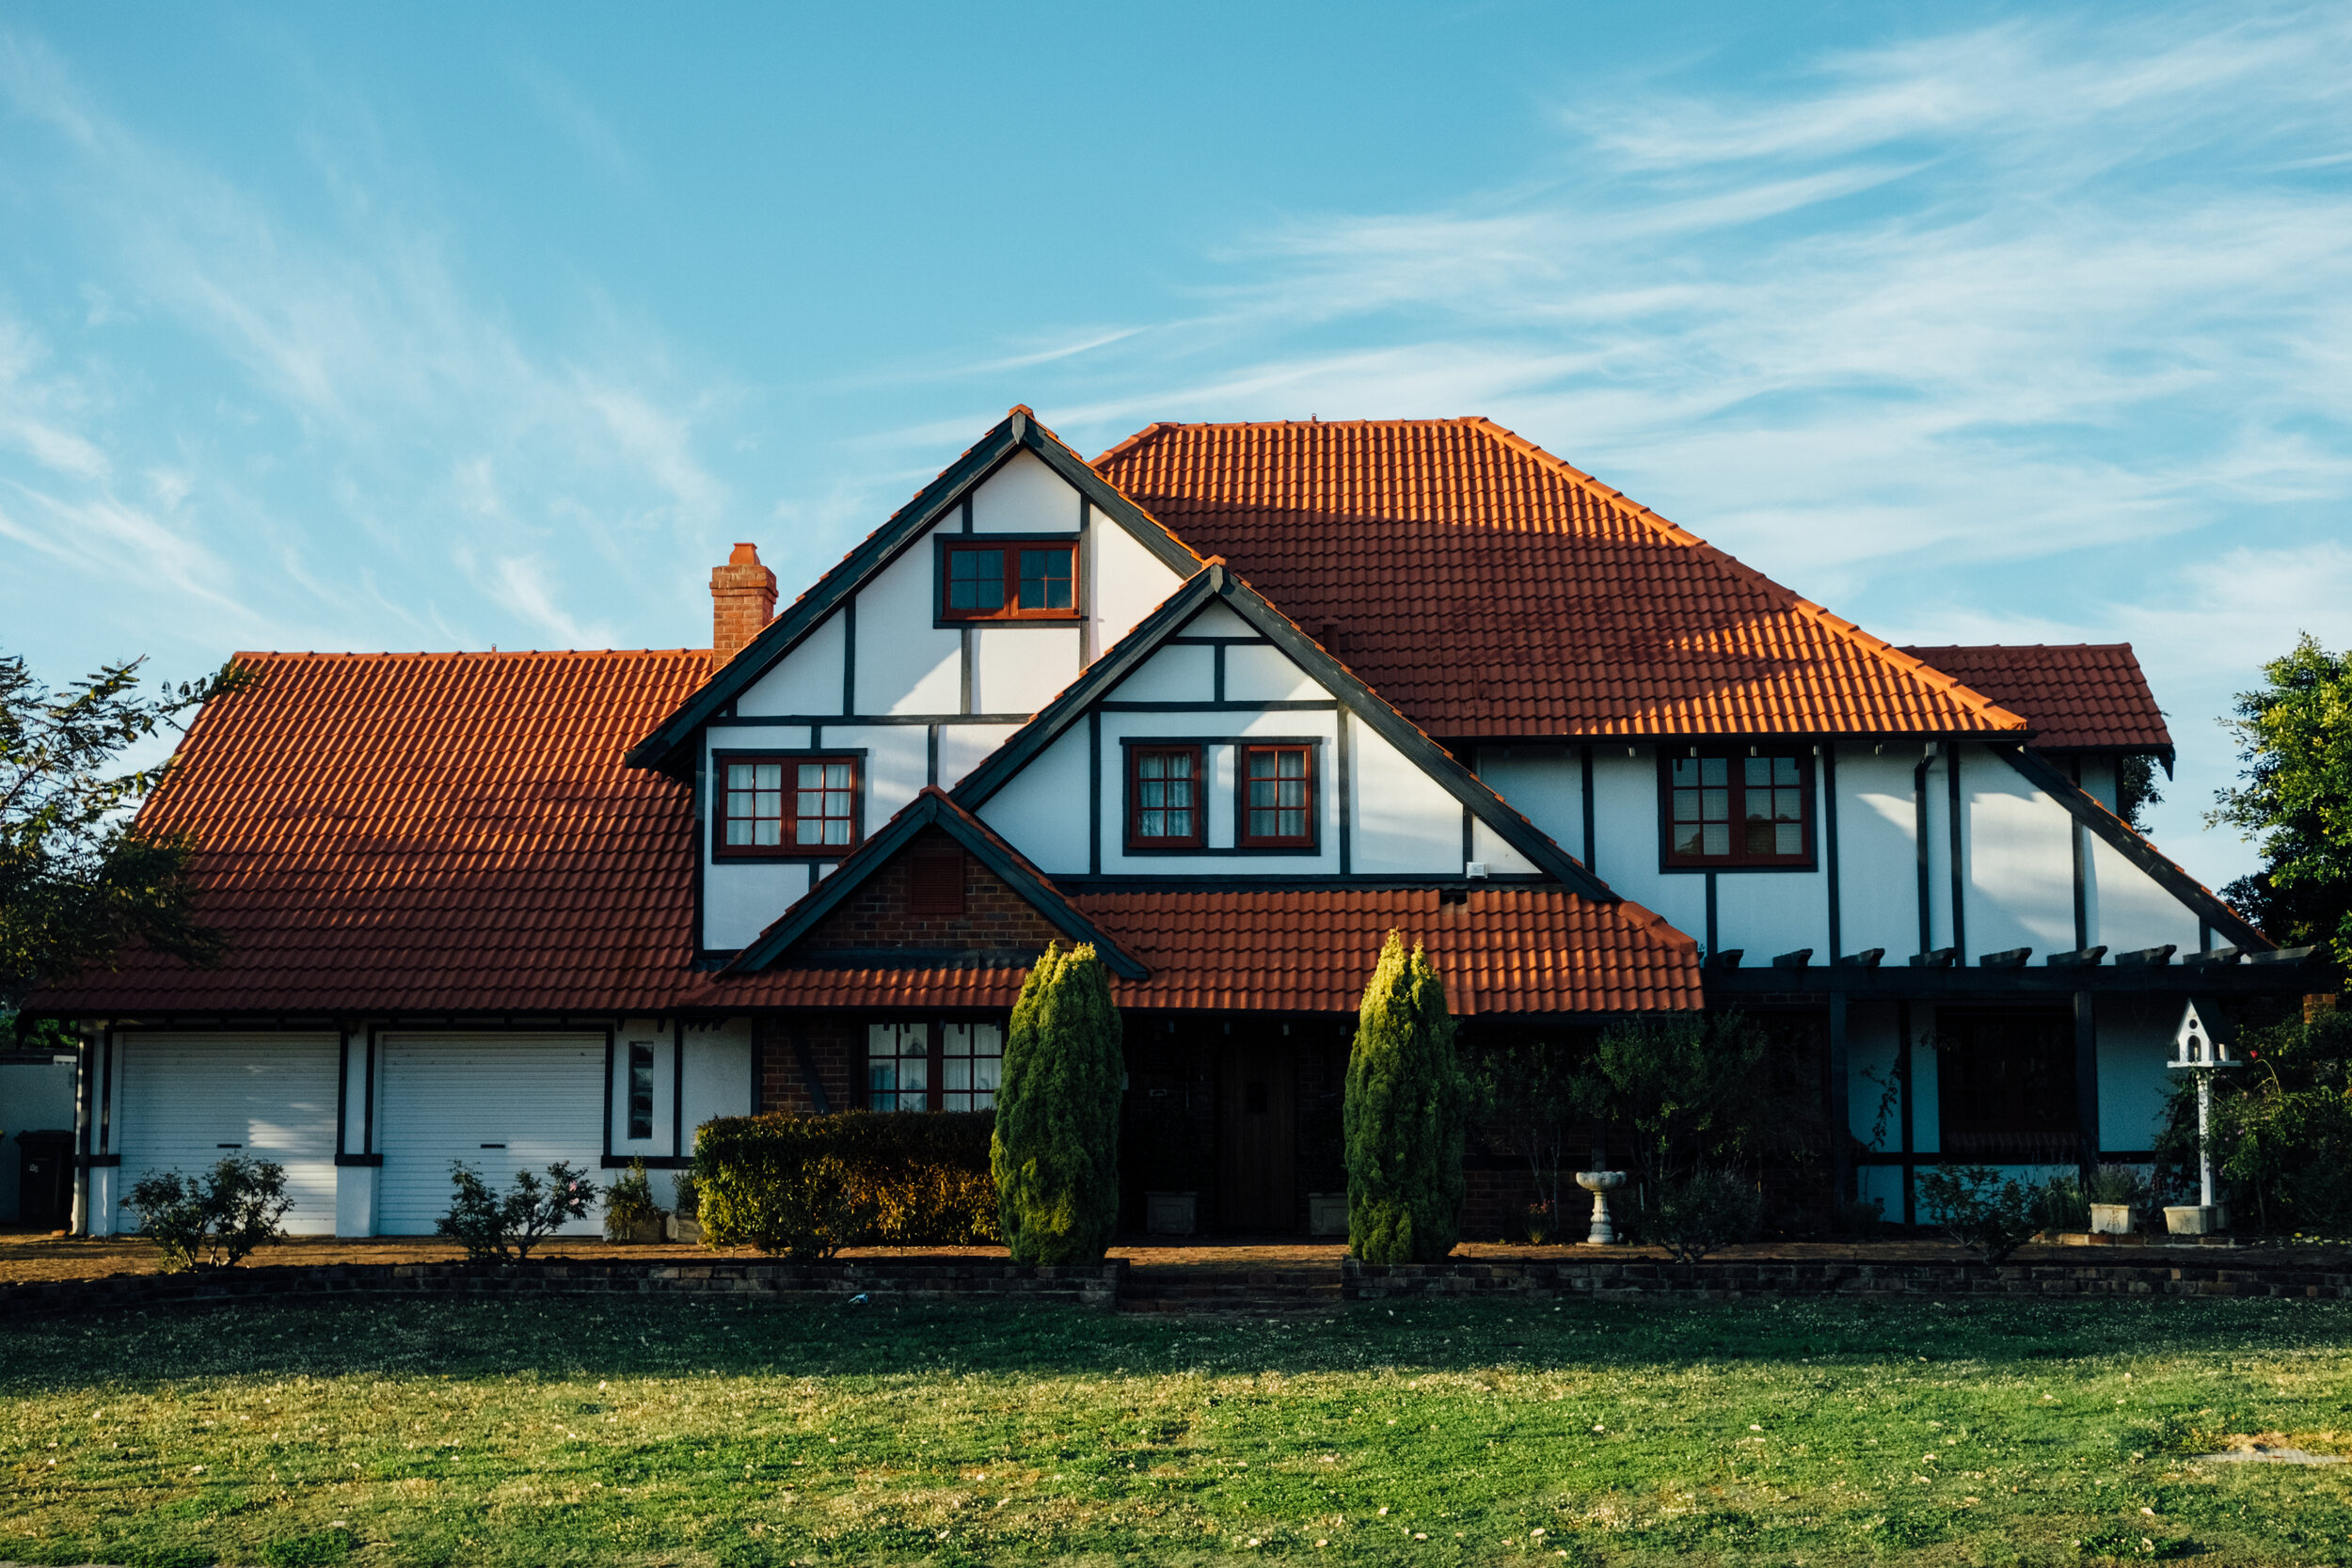 Single Family Home Inspections - Single Family Homes, Townhouses, CondosASHI Certified. The highest standard in the industry.Single family Starting at 349.00Averages per house type:Avg. Single family home ~ 500.00Avg. Condo ~ 389.00Avg. Townhouse ~ 415.00